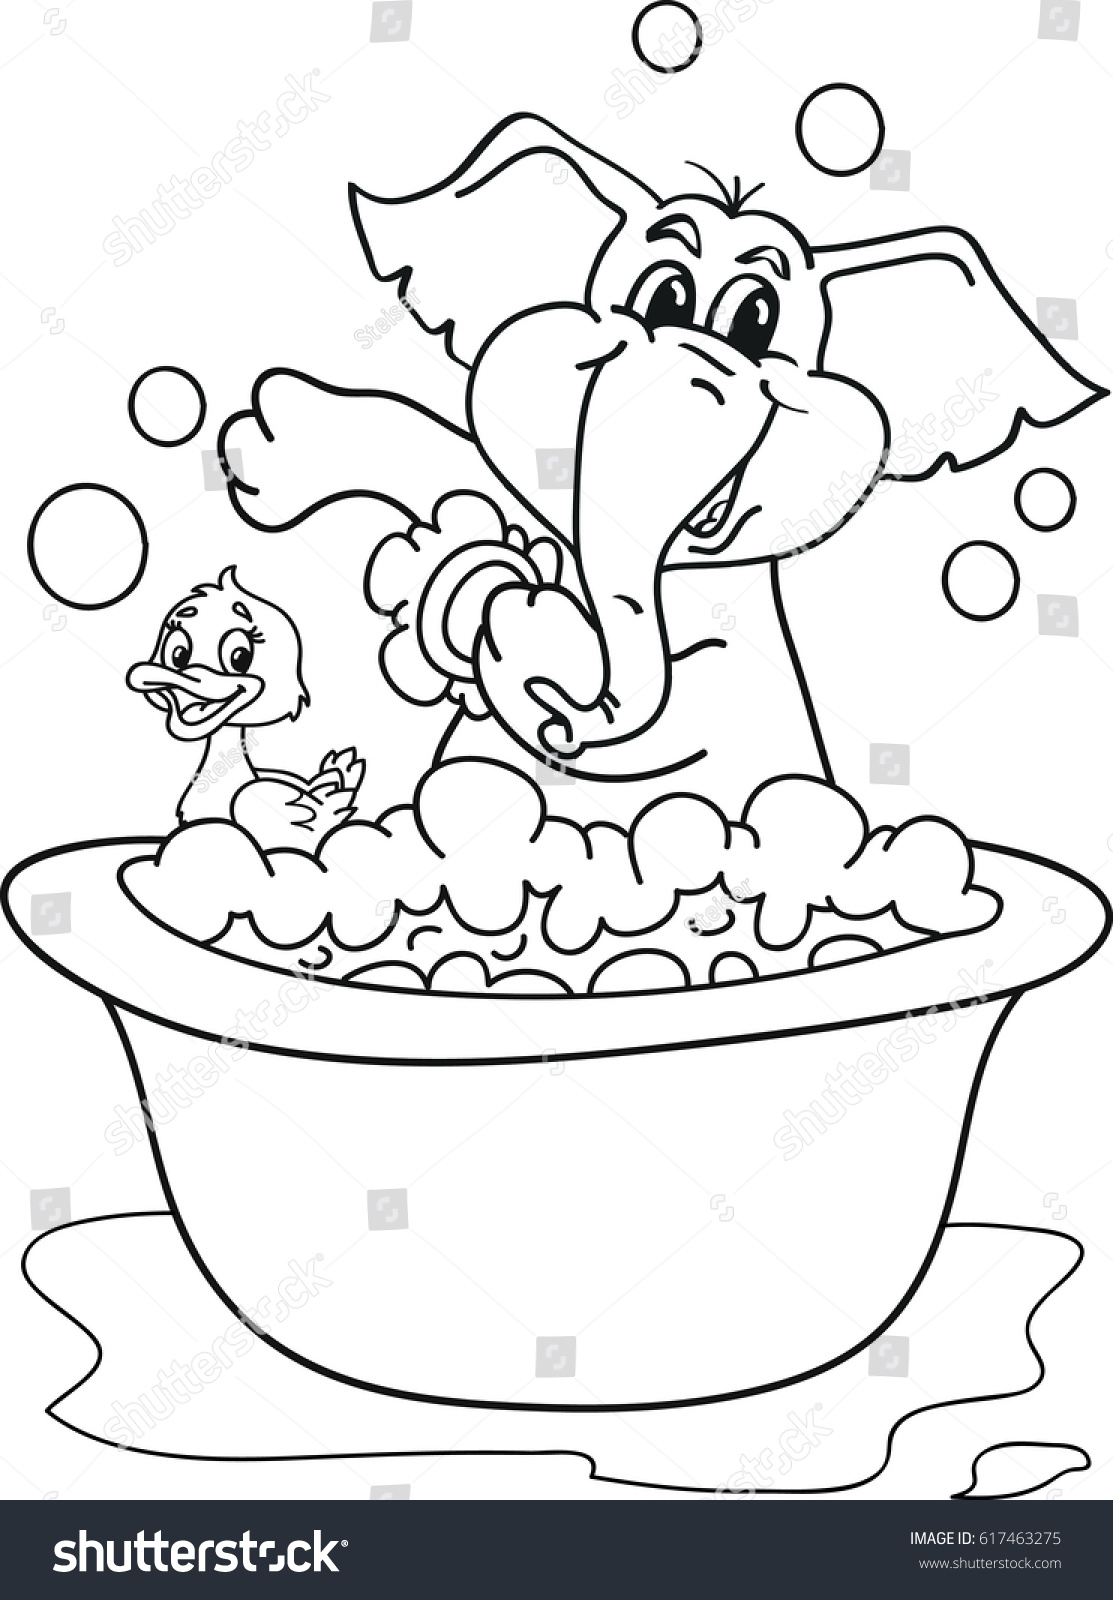 coloring page outline cartoon baby elephant stock vector 617463275